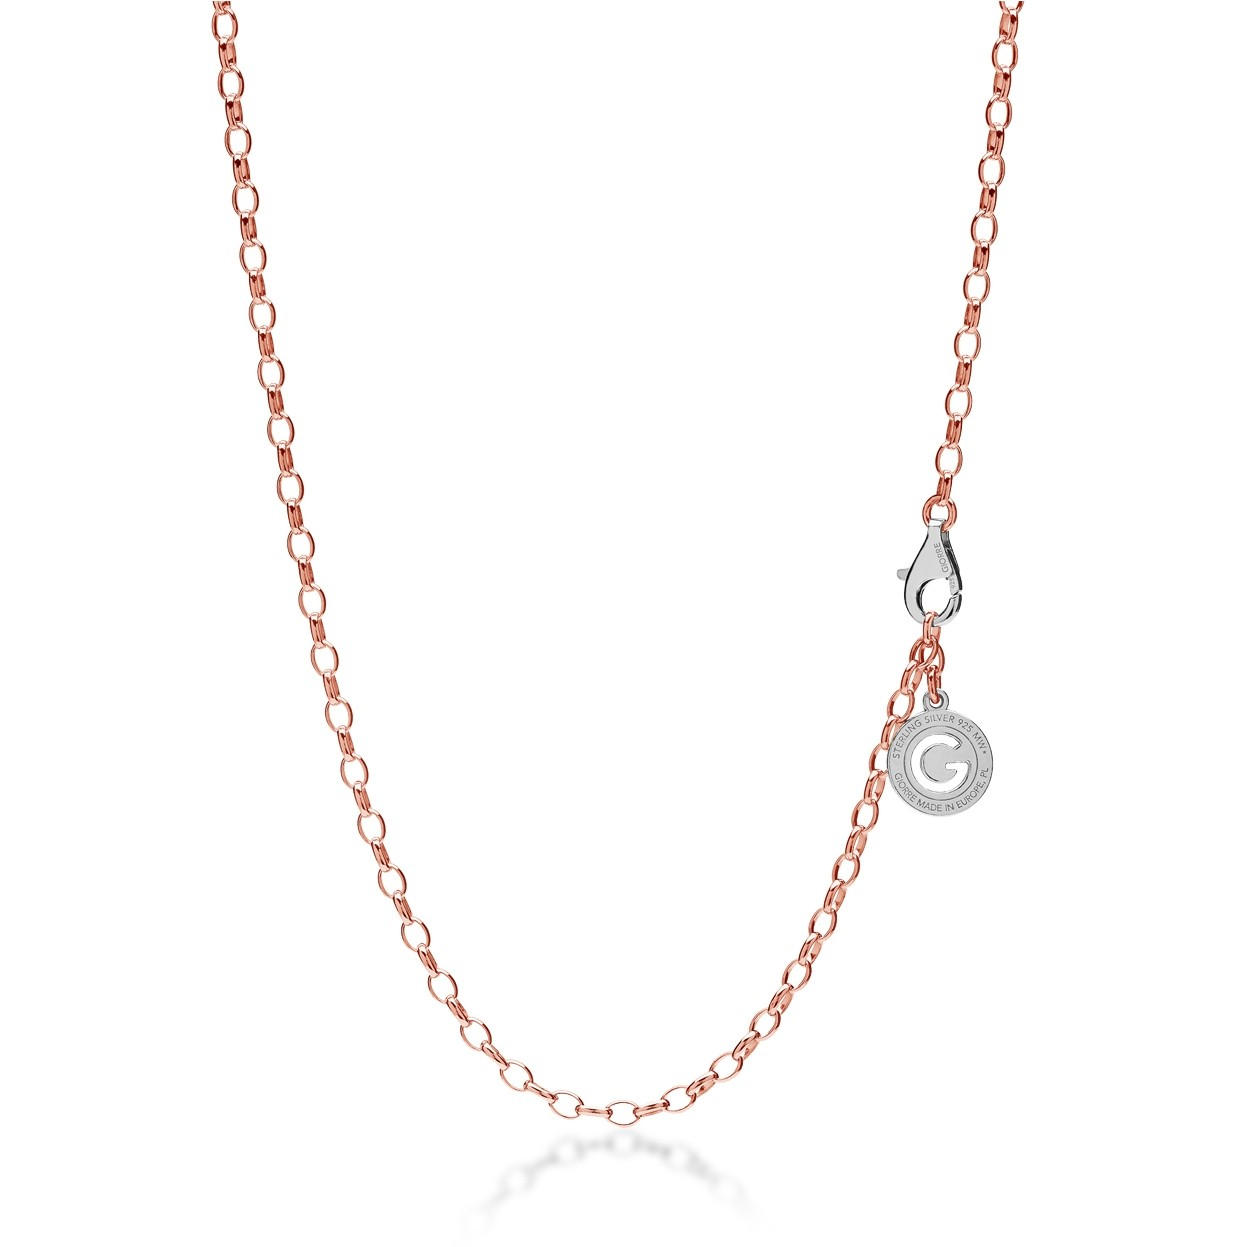 Sterling silver necklace 55-65 cm pink gold, light rhodium clasp, link 4x3 mm